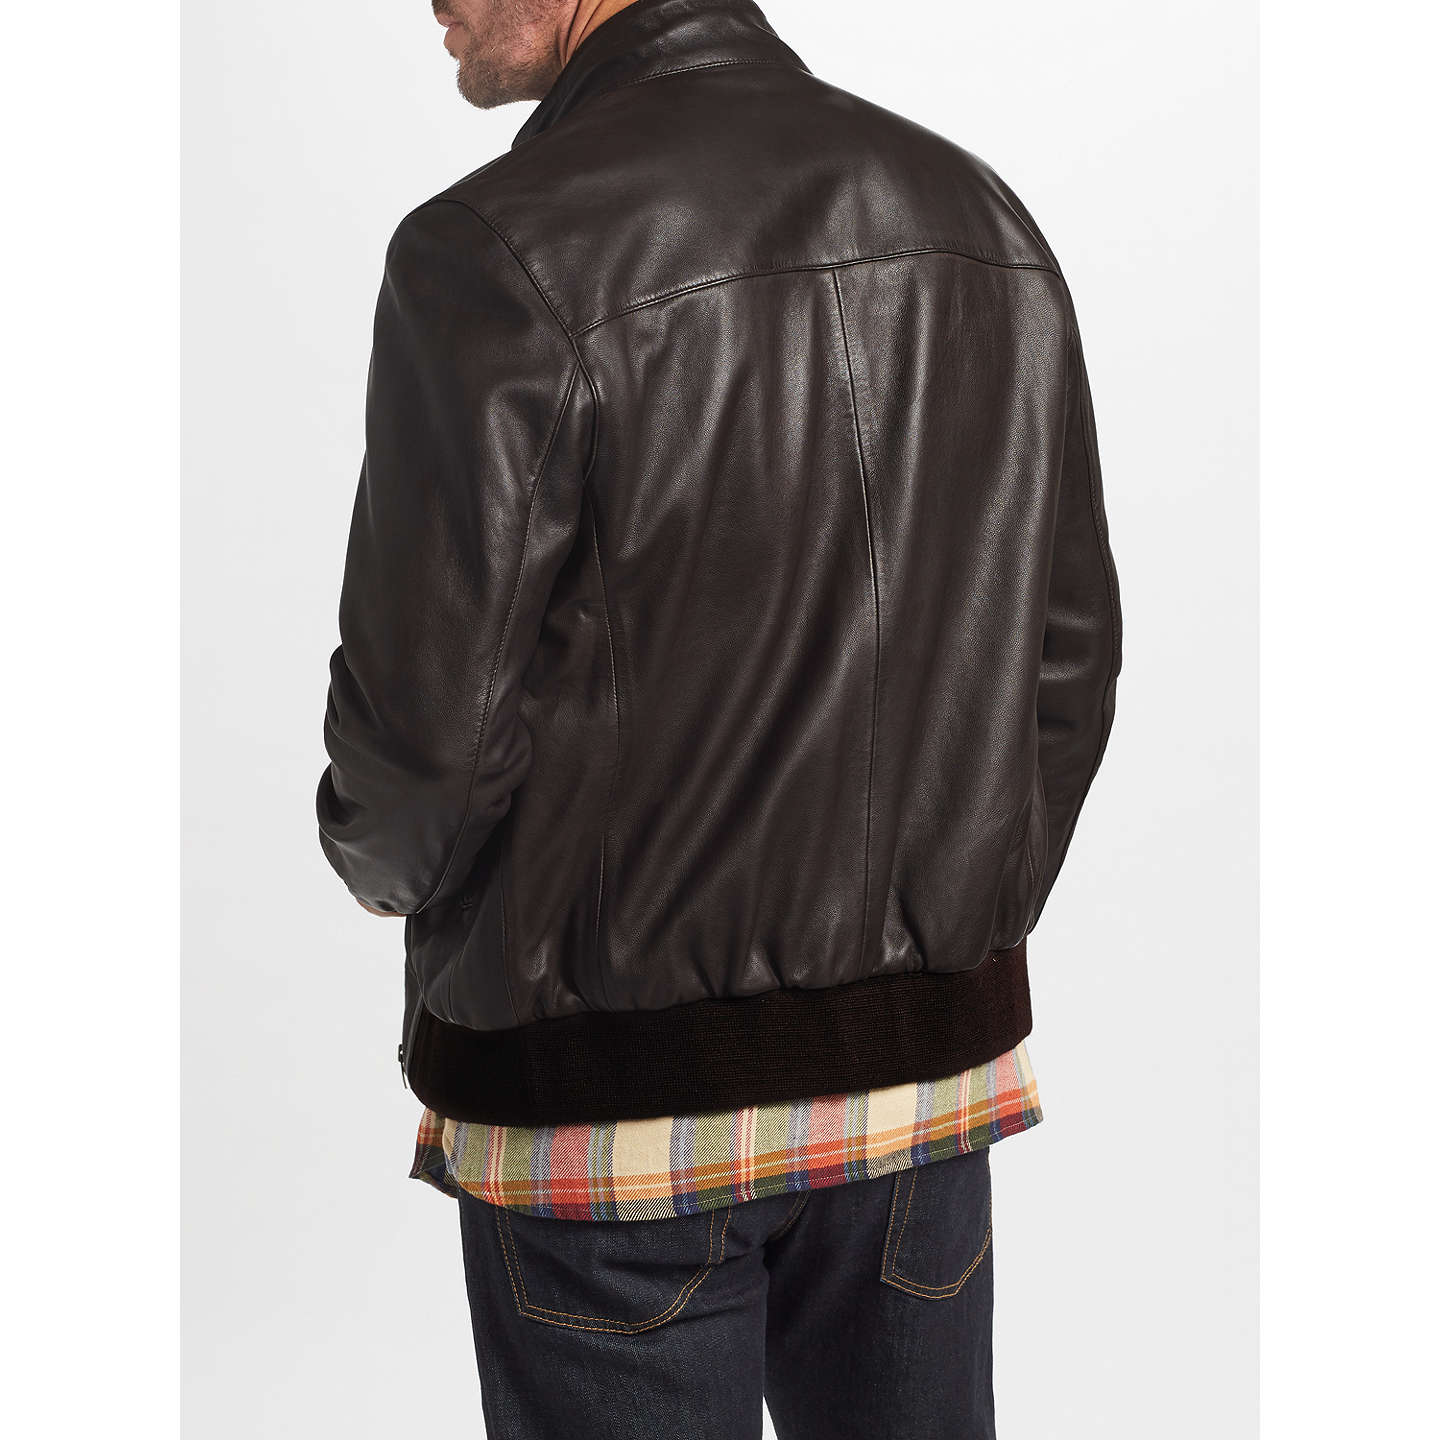 BuyJohn Lewis Leather Harrington Jacket, Brown, S Online at johnlewis.com